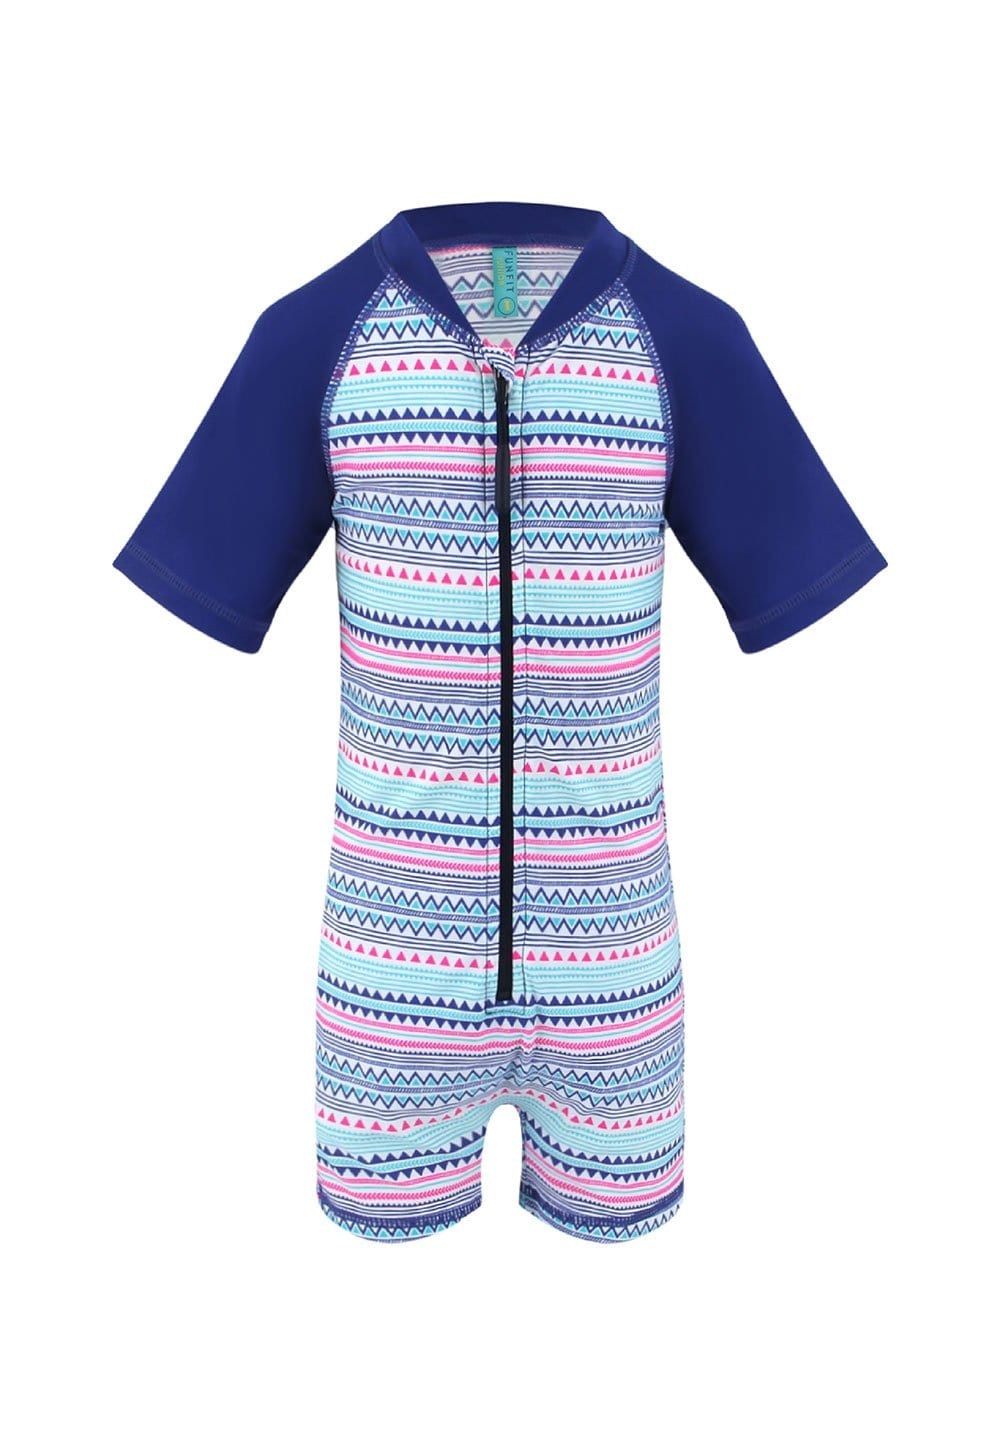 FUNFIT UPF50+ Junior Sunsuit (Unisex) in Day Starstruck Print